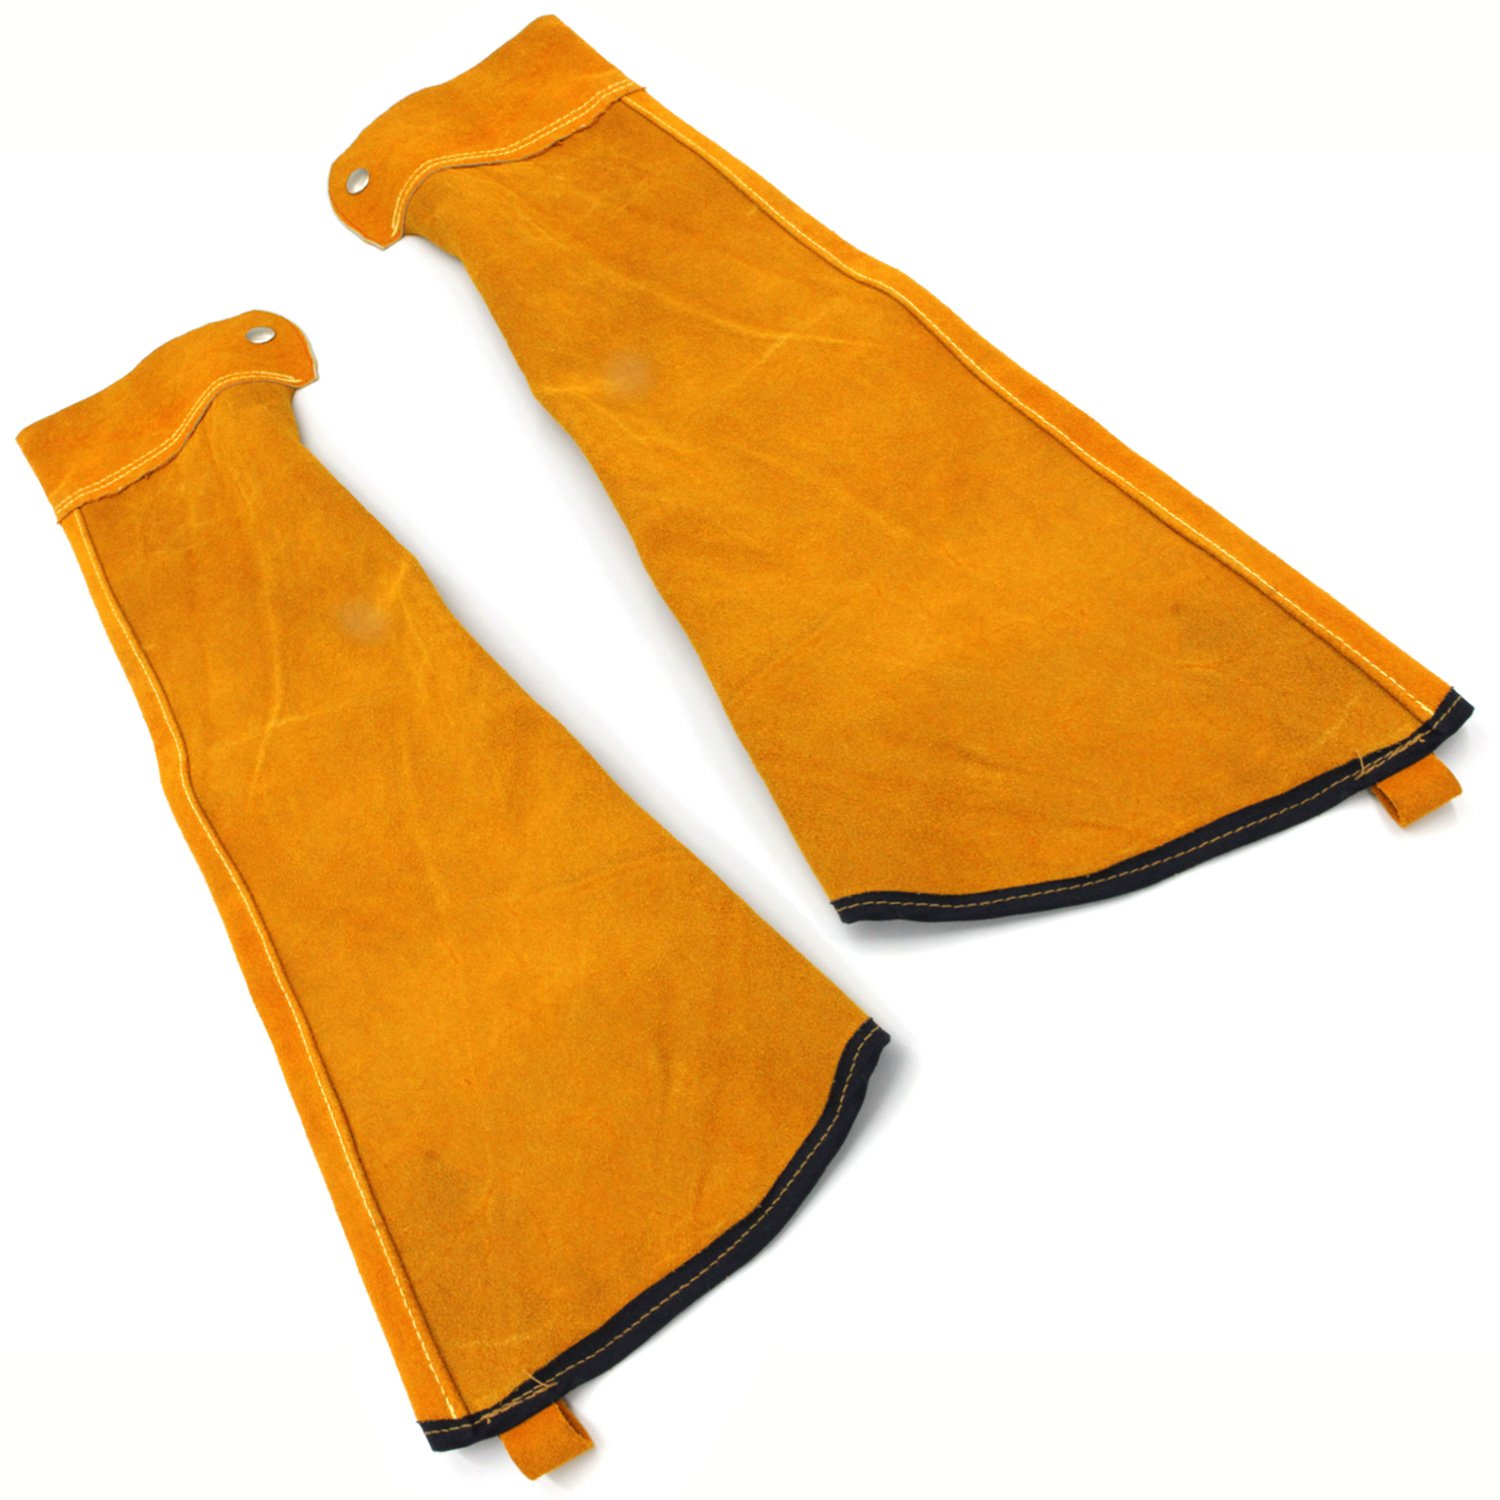 Heat Resistant Welding Sleeves,Leather Sleeves for welding, Button closure,Spark Resistant Protection,1 Pair (yellow)